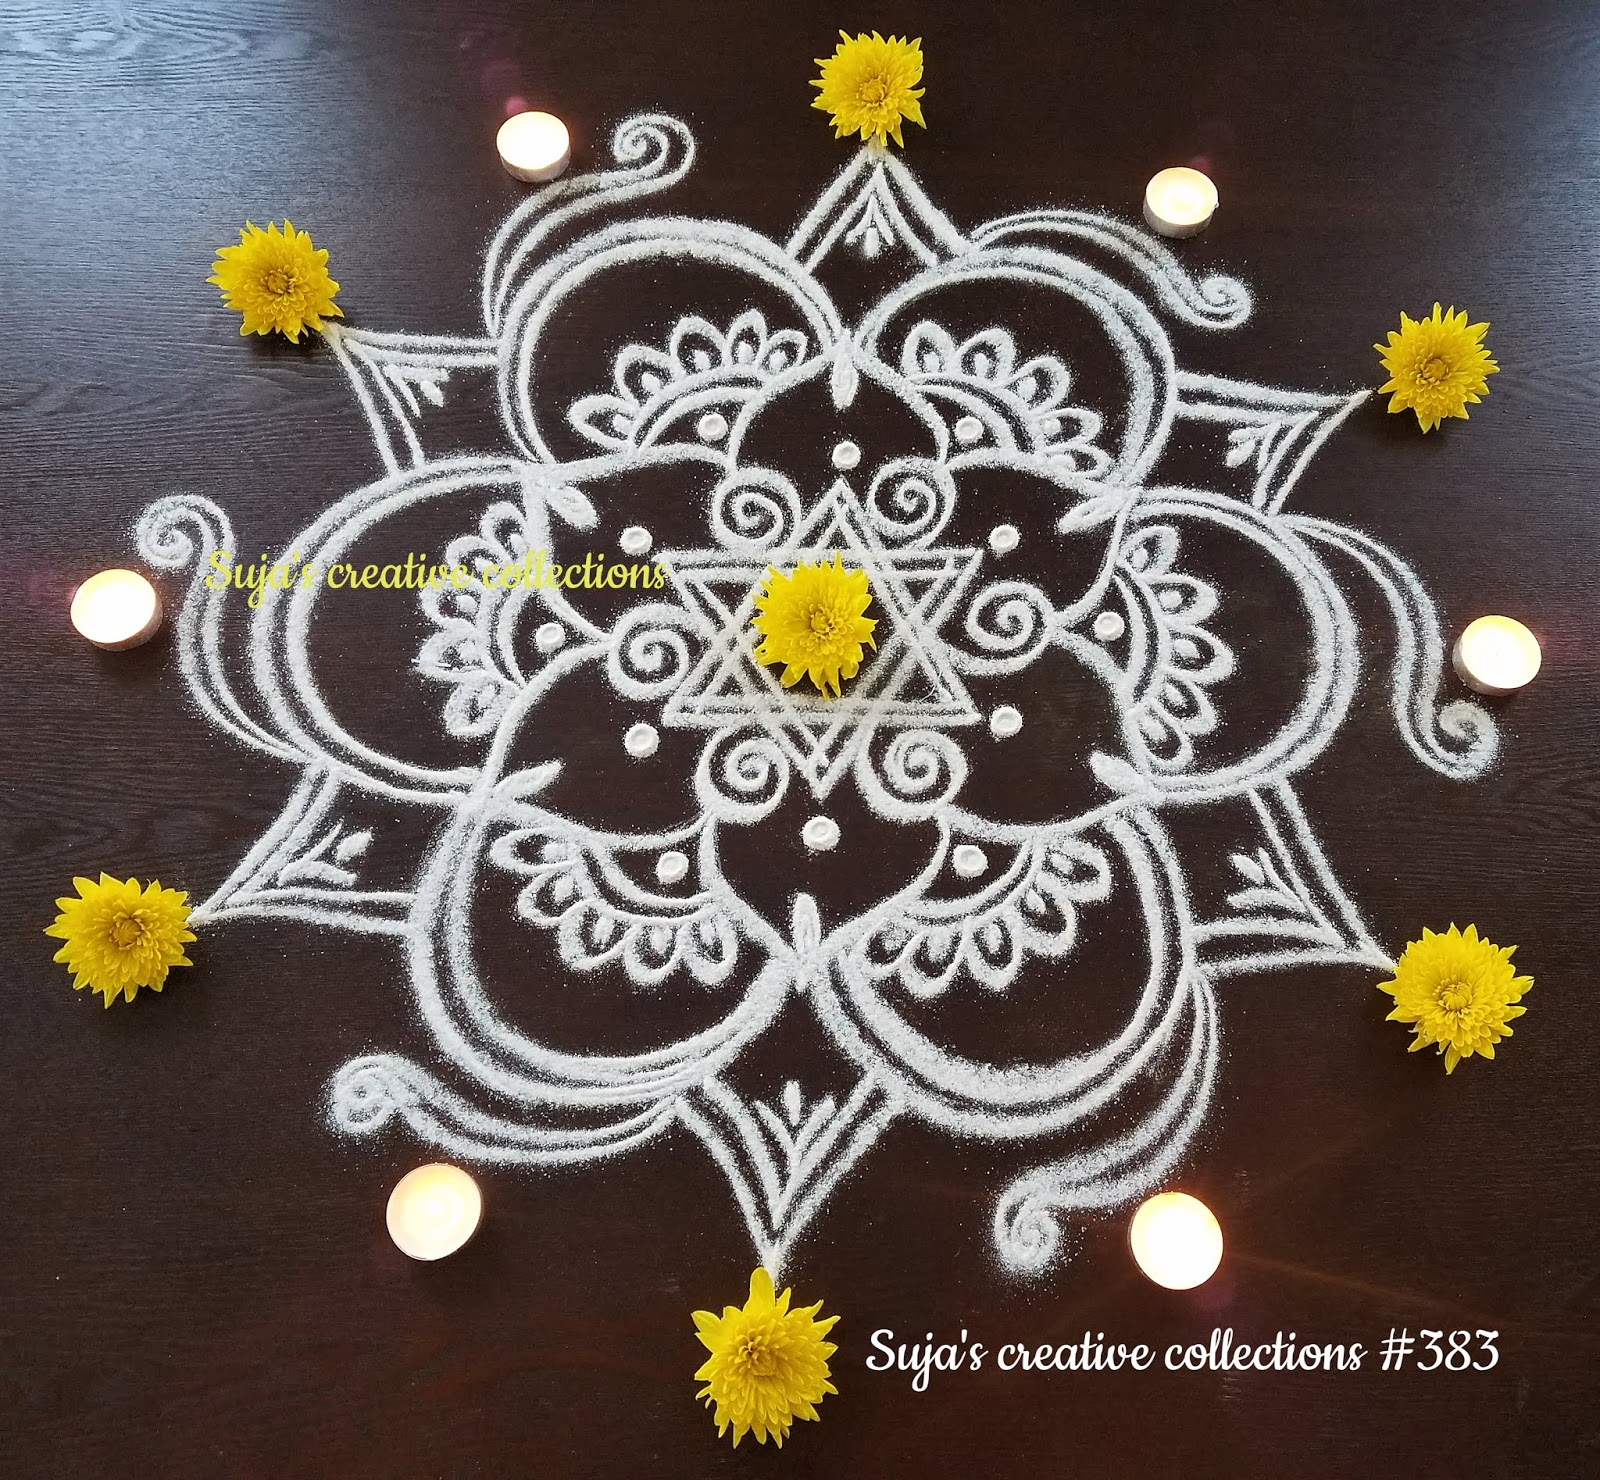 Suja S Creative Collections New Year Special Rangoli Designs